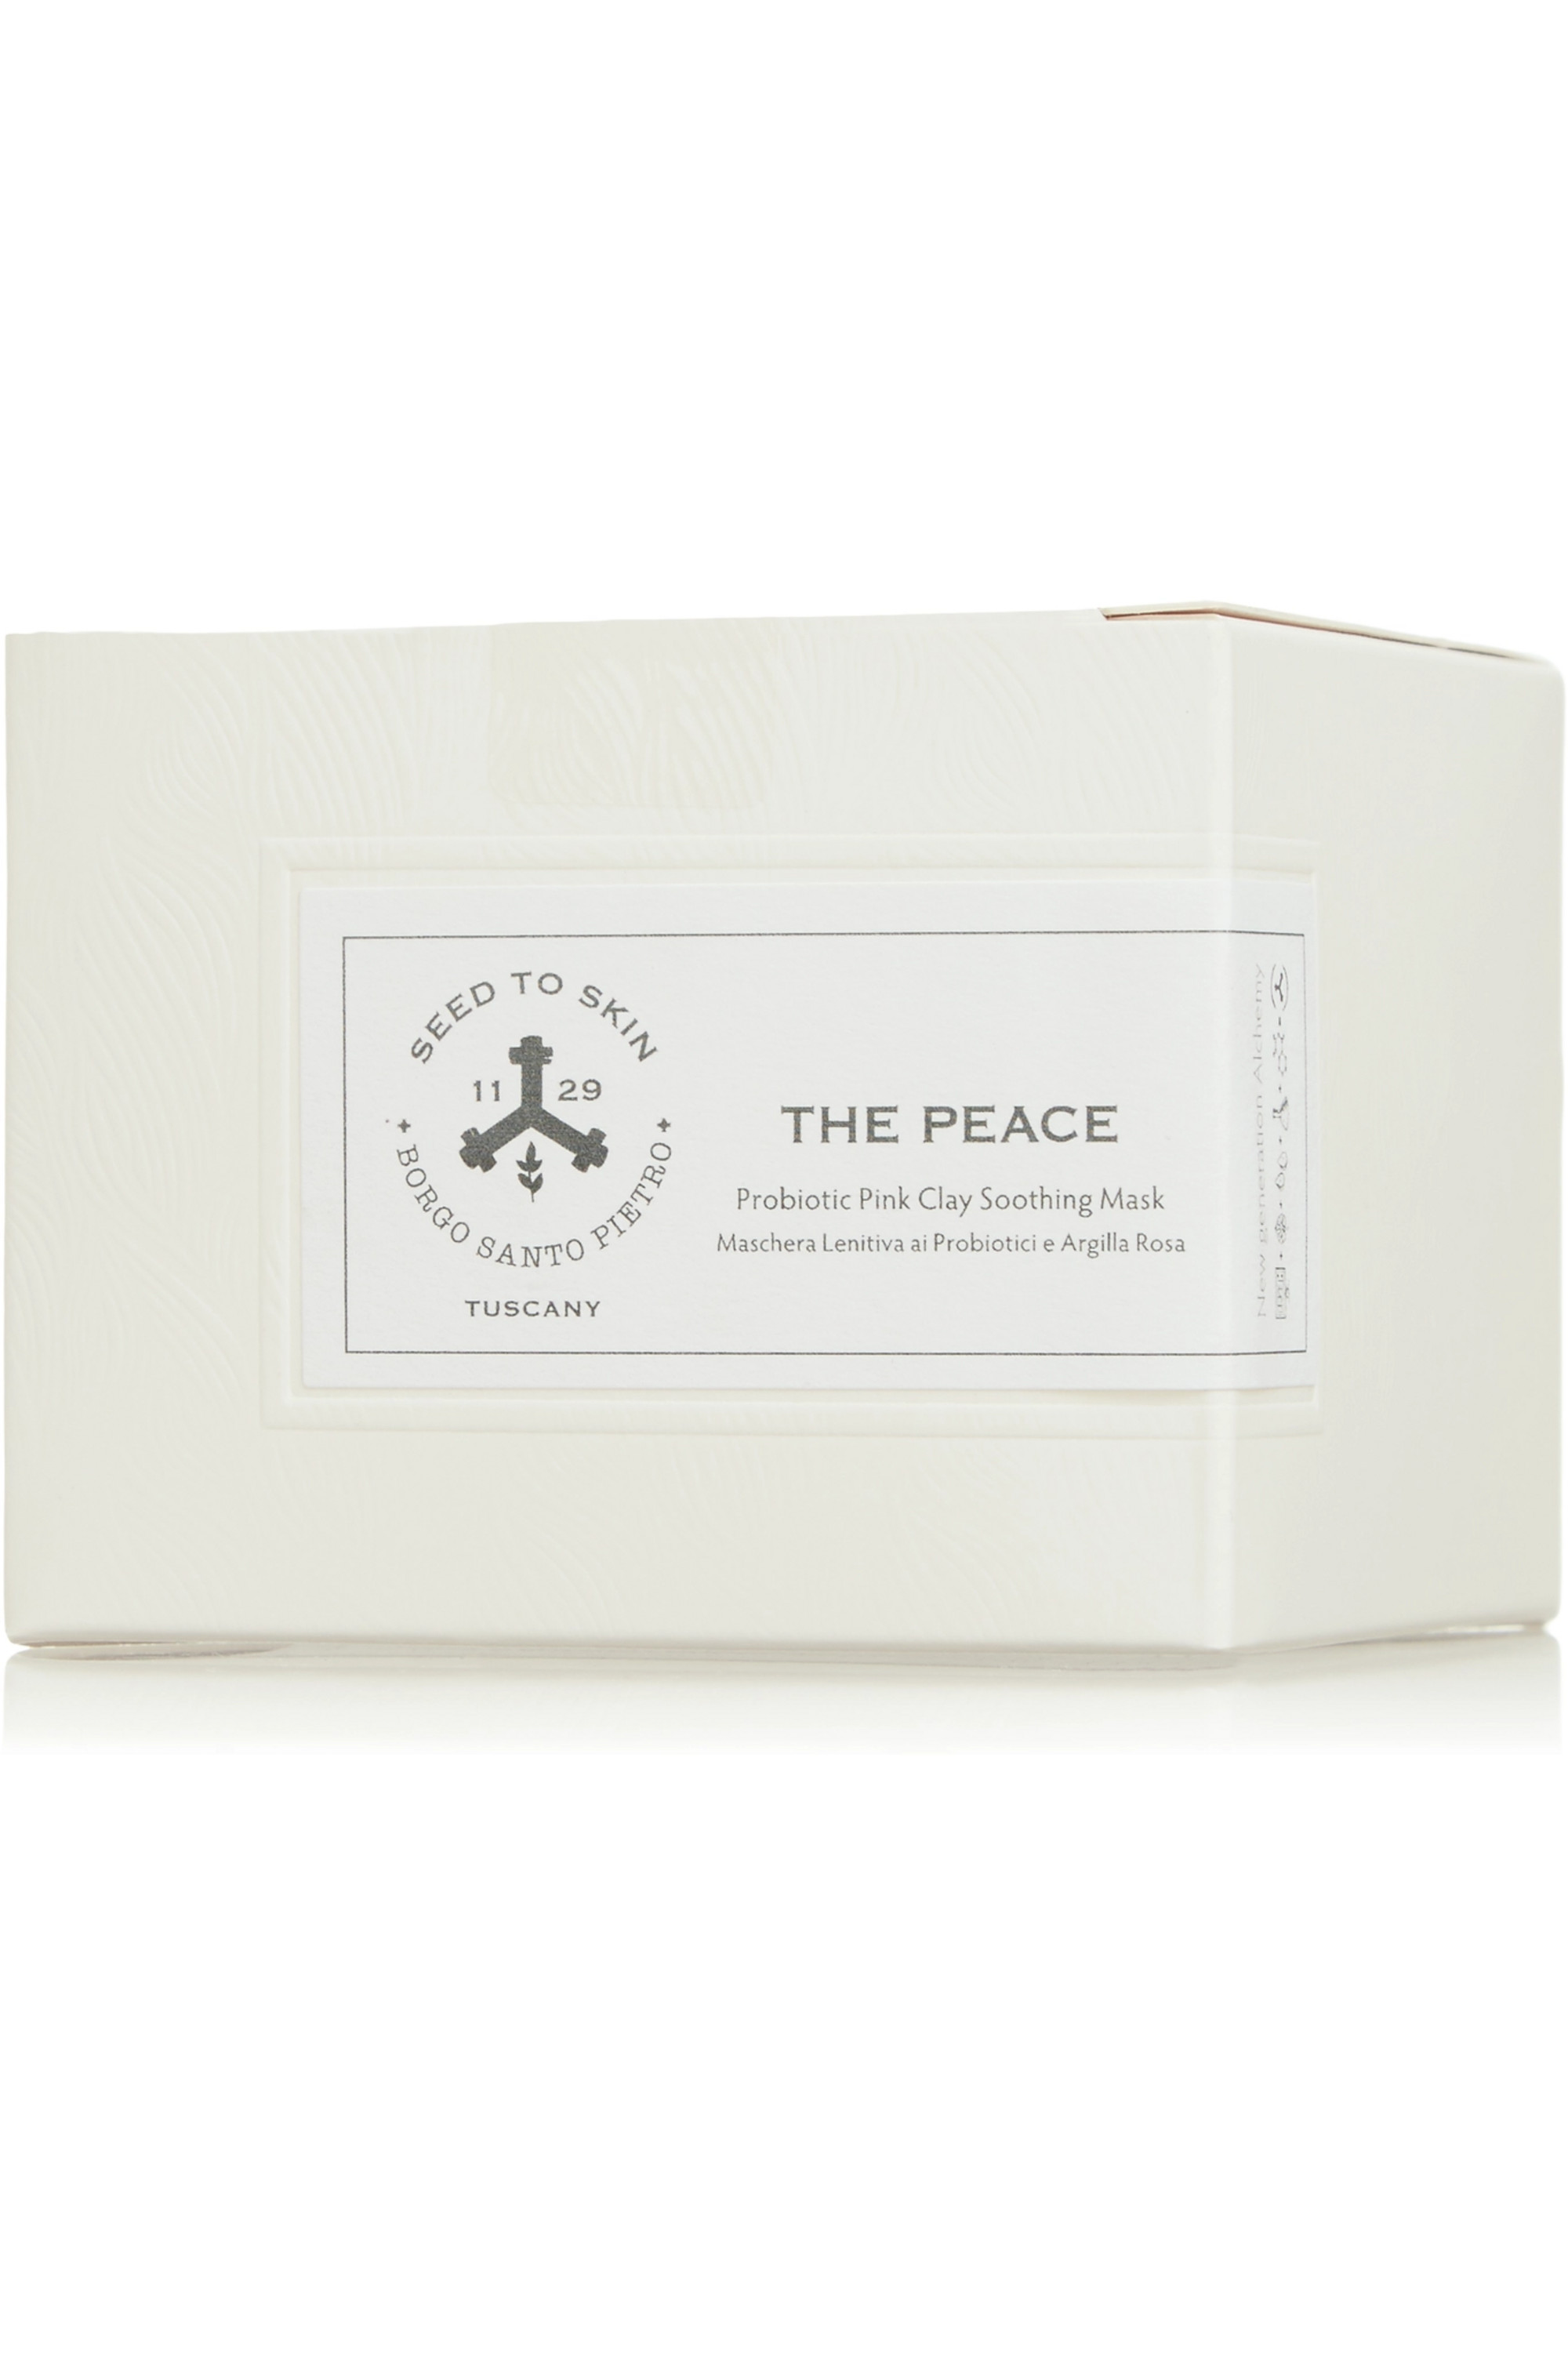 Seed to Skin The Peace Probiotic Pink Clay Soothing Mask, 35g